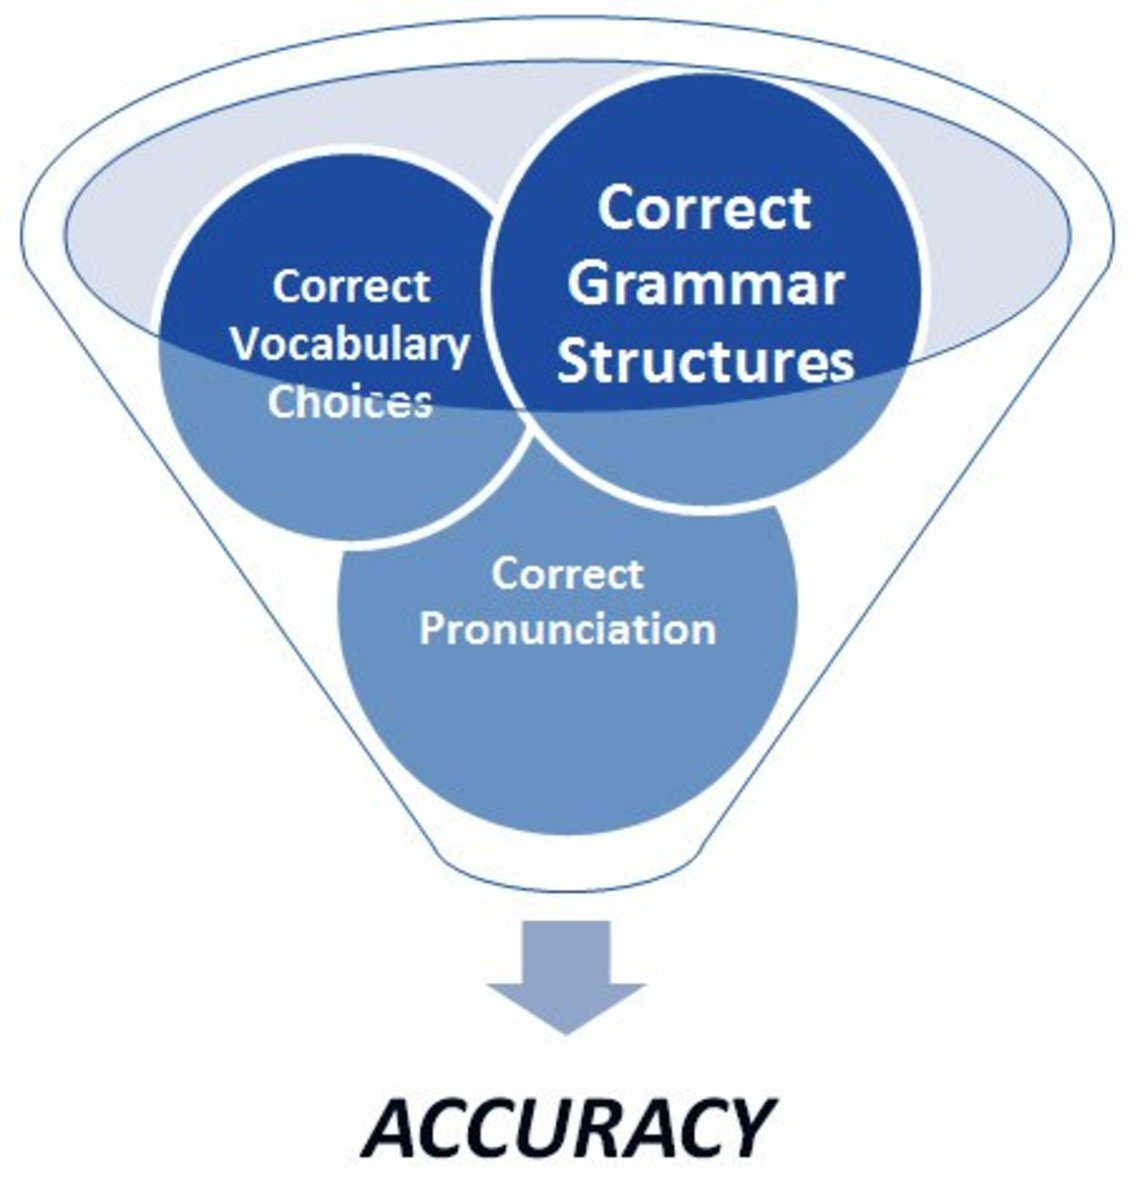 What is Meant by Accuracy, Fluency and Complexity in Relation to Second Language Learner Acquisition?